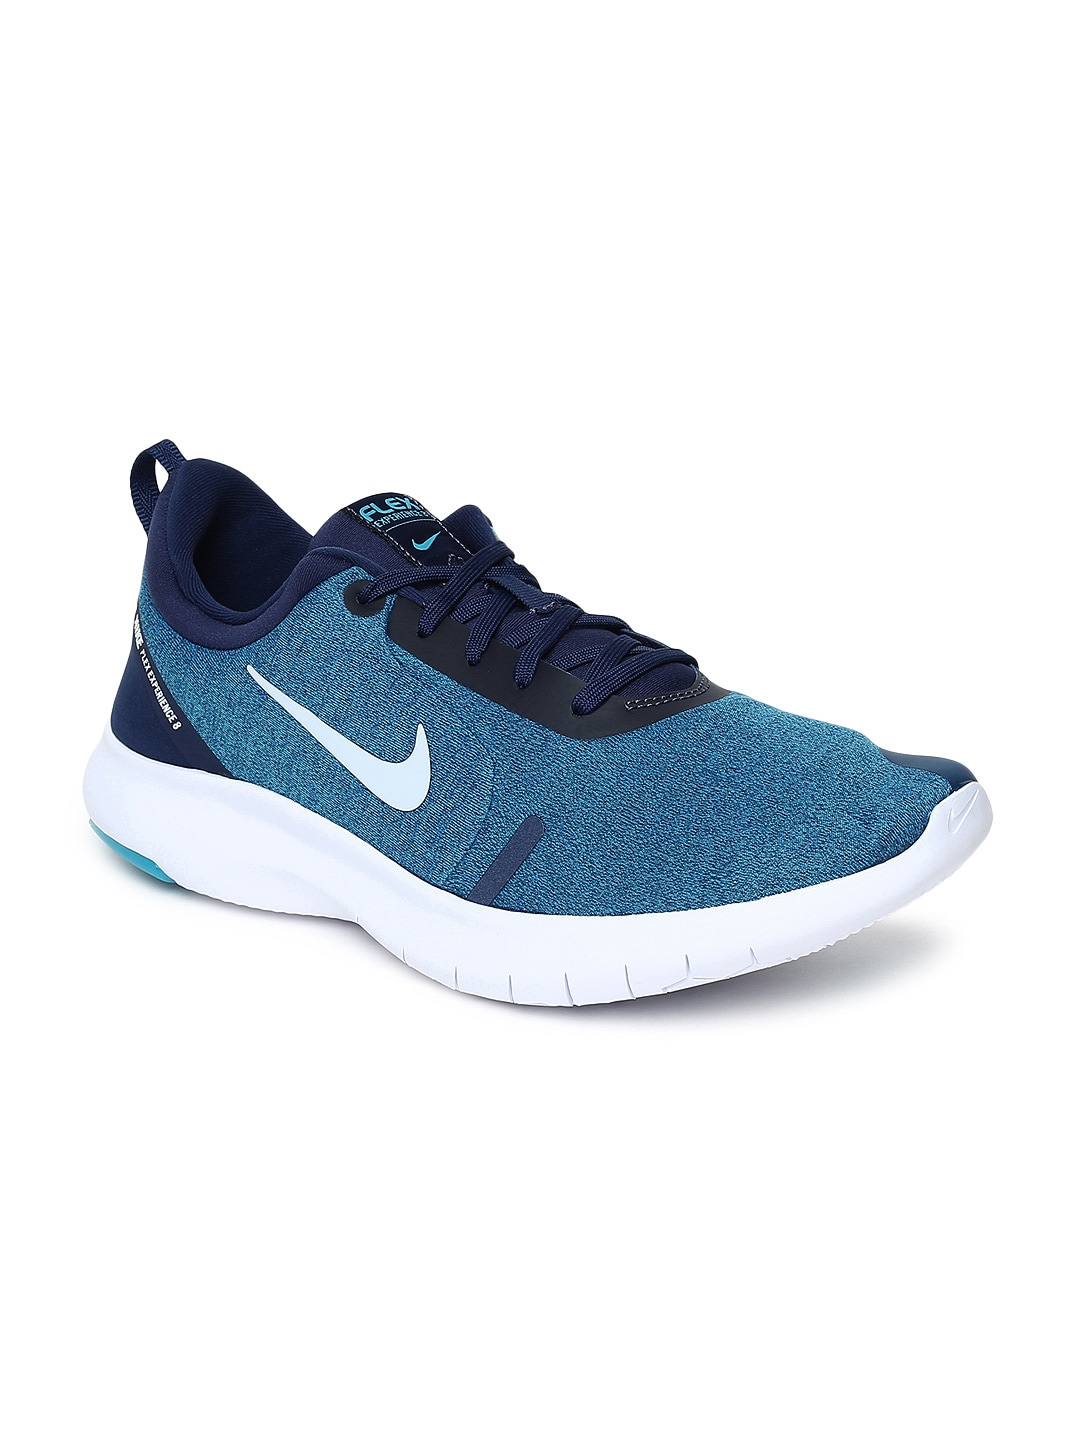 9c2fba07981e Nike Blue Shoes - Buy Nike Blue Shoes Online in India